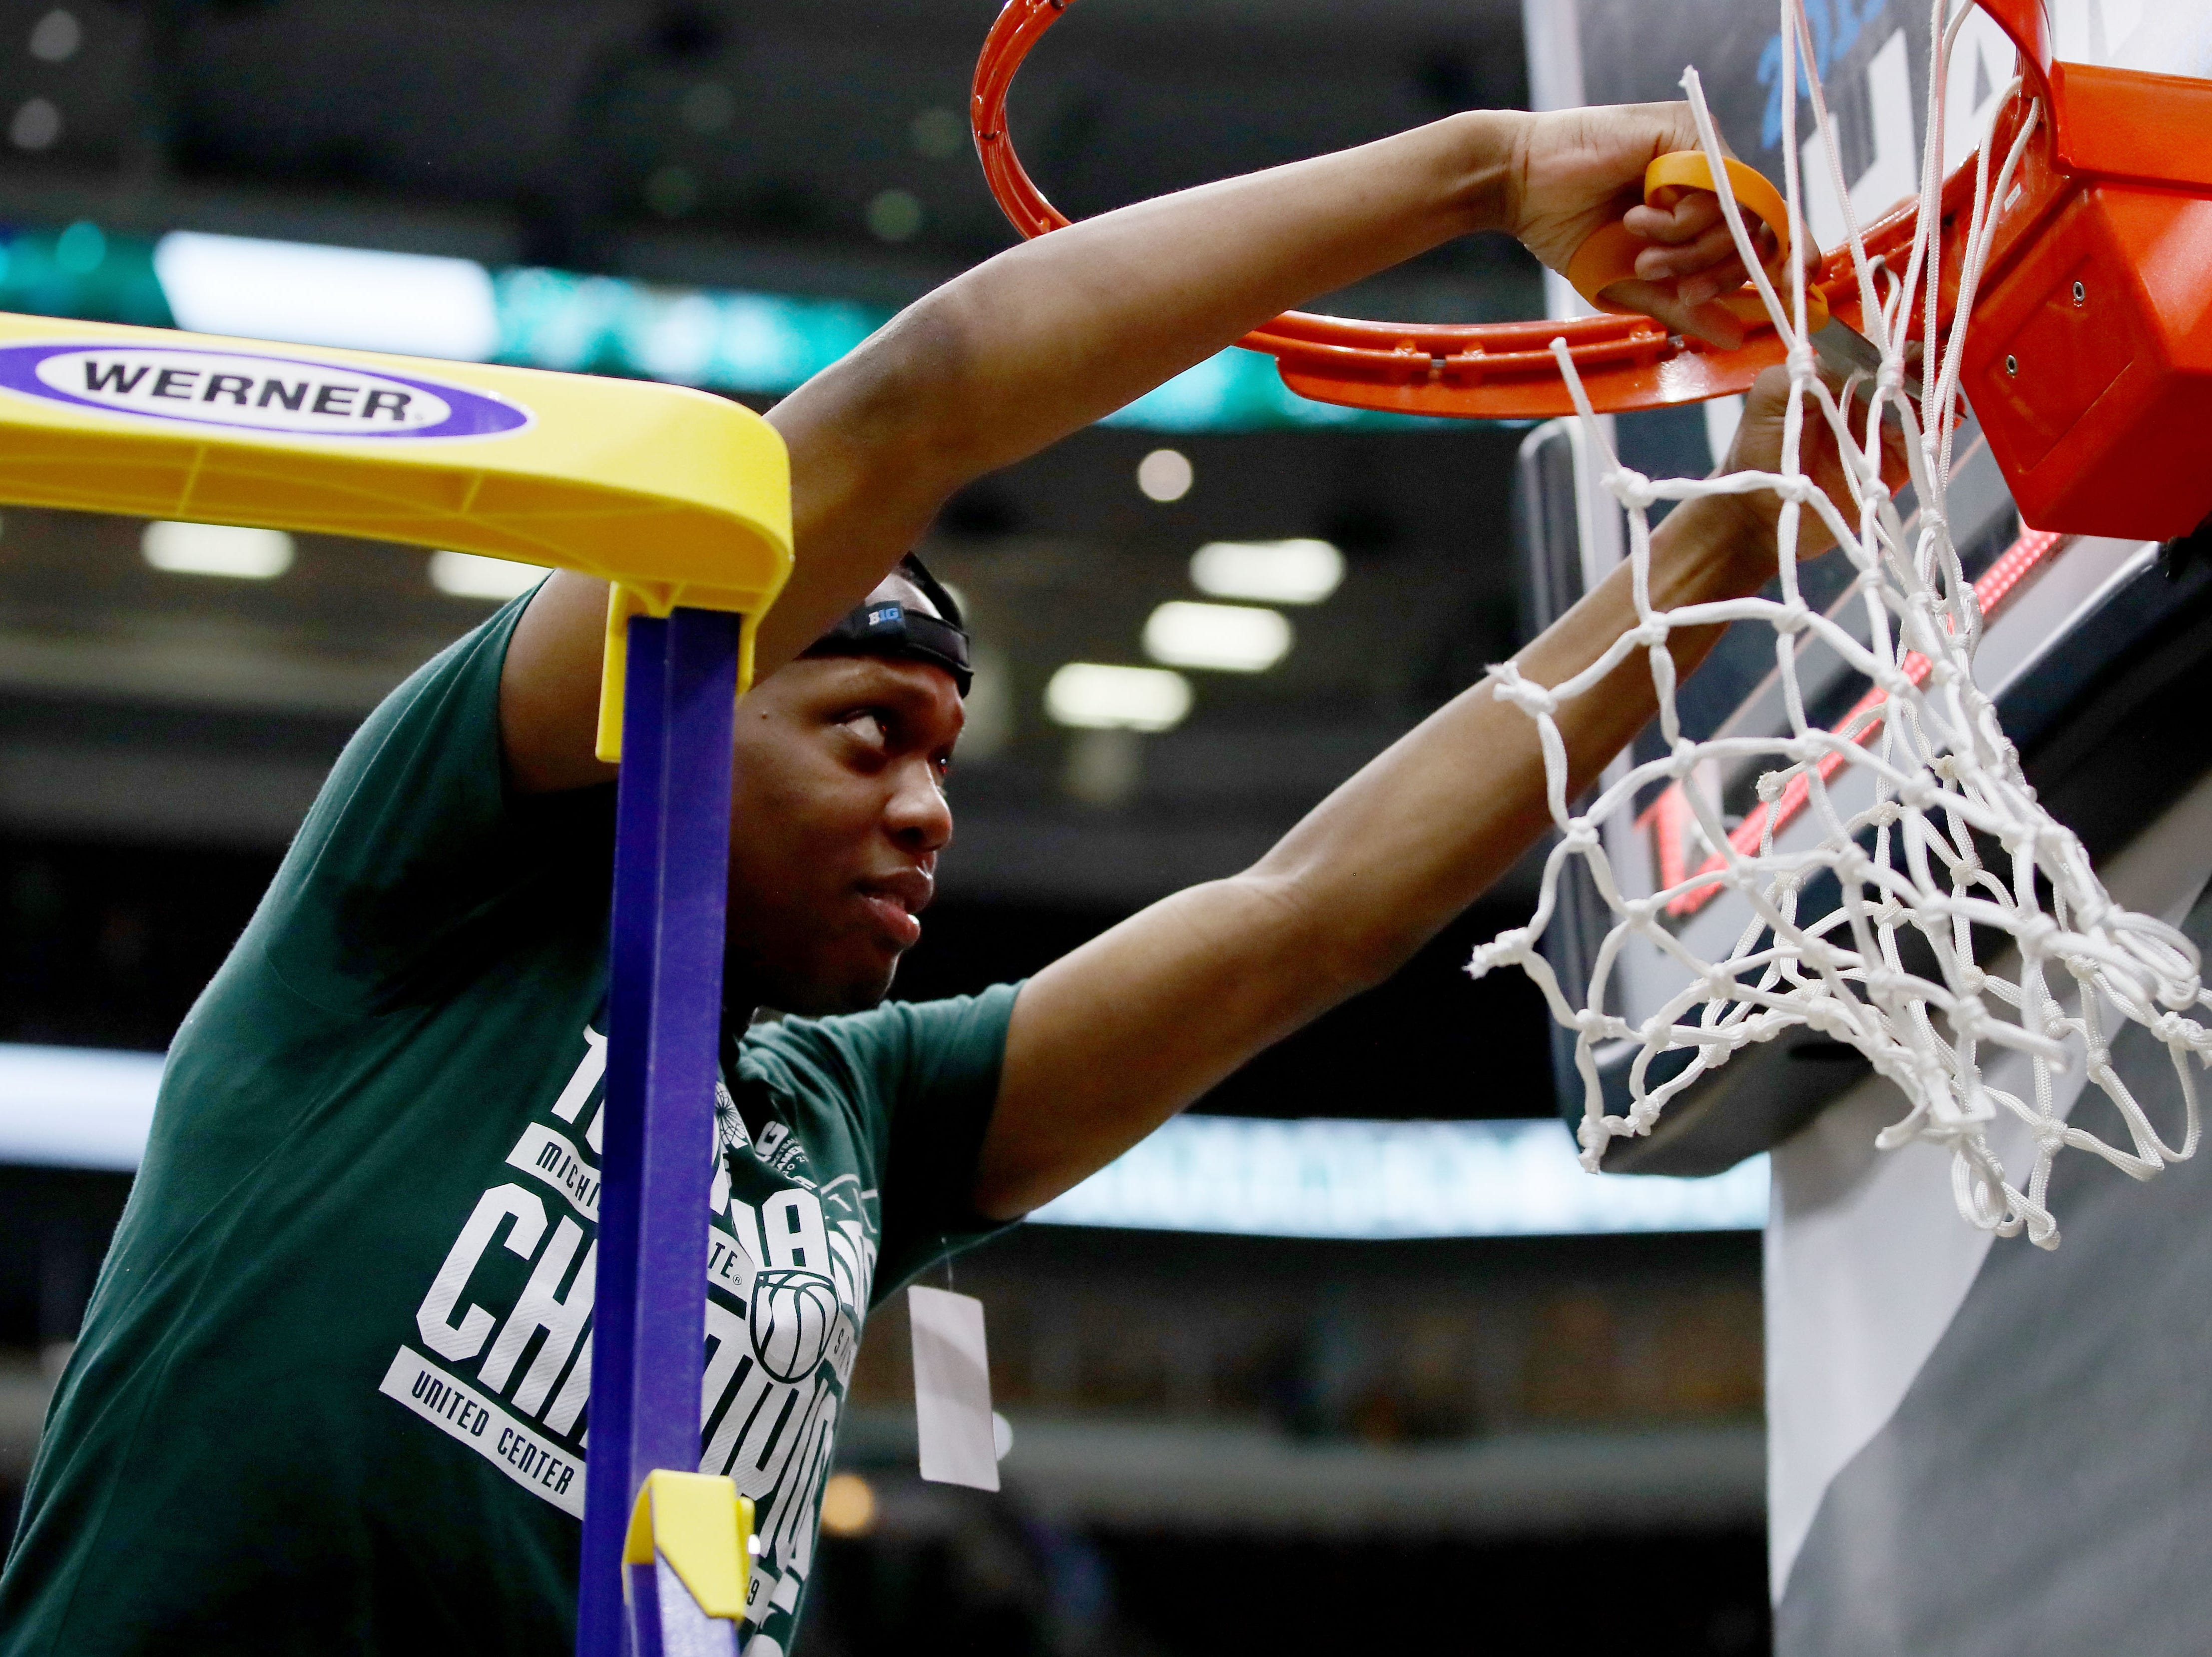 CHICAGO, ILLINOIS - MARCH 17:  Cassius Winston #5 of the Michigan State Spartans cuts down the nets after beating the Michigan Wolverines 65-60 in the championship game of the Big Ten Basketball Tournament at the United Center on March 17, 2019 in Chicago, Illinois. (Photo by Jonathan Daniel/Getty Images)